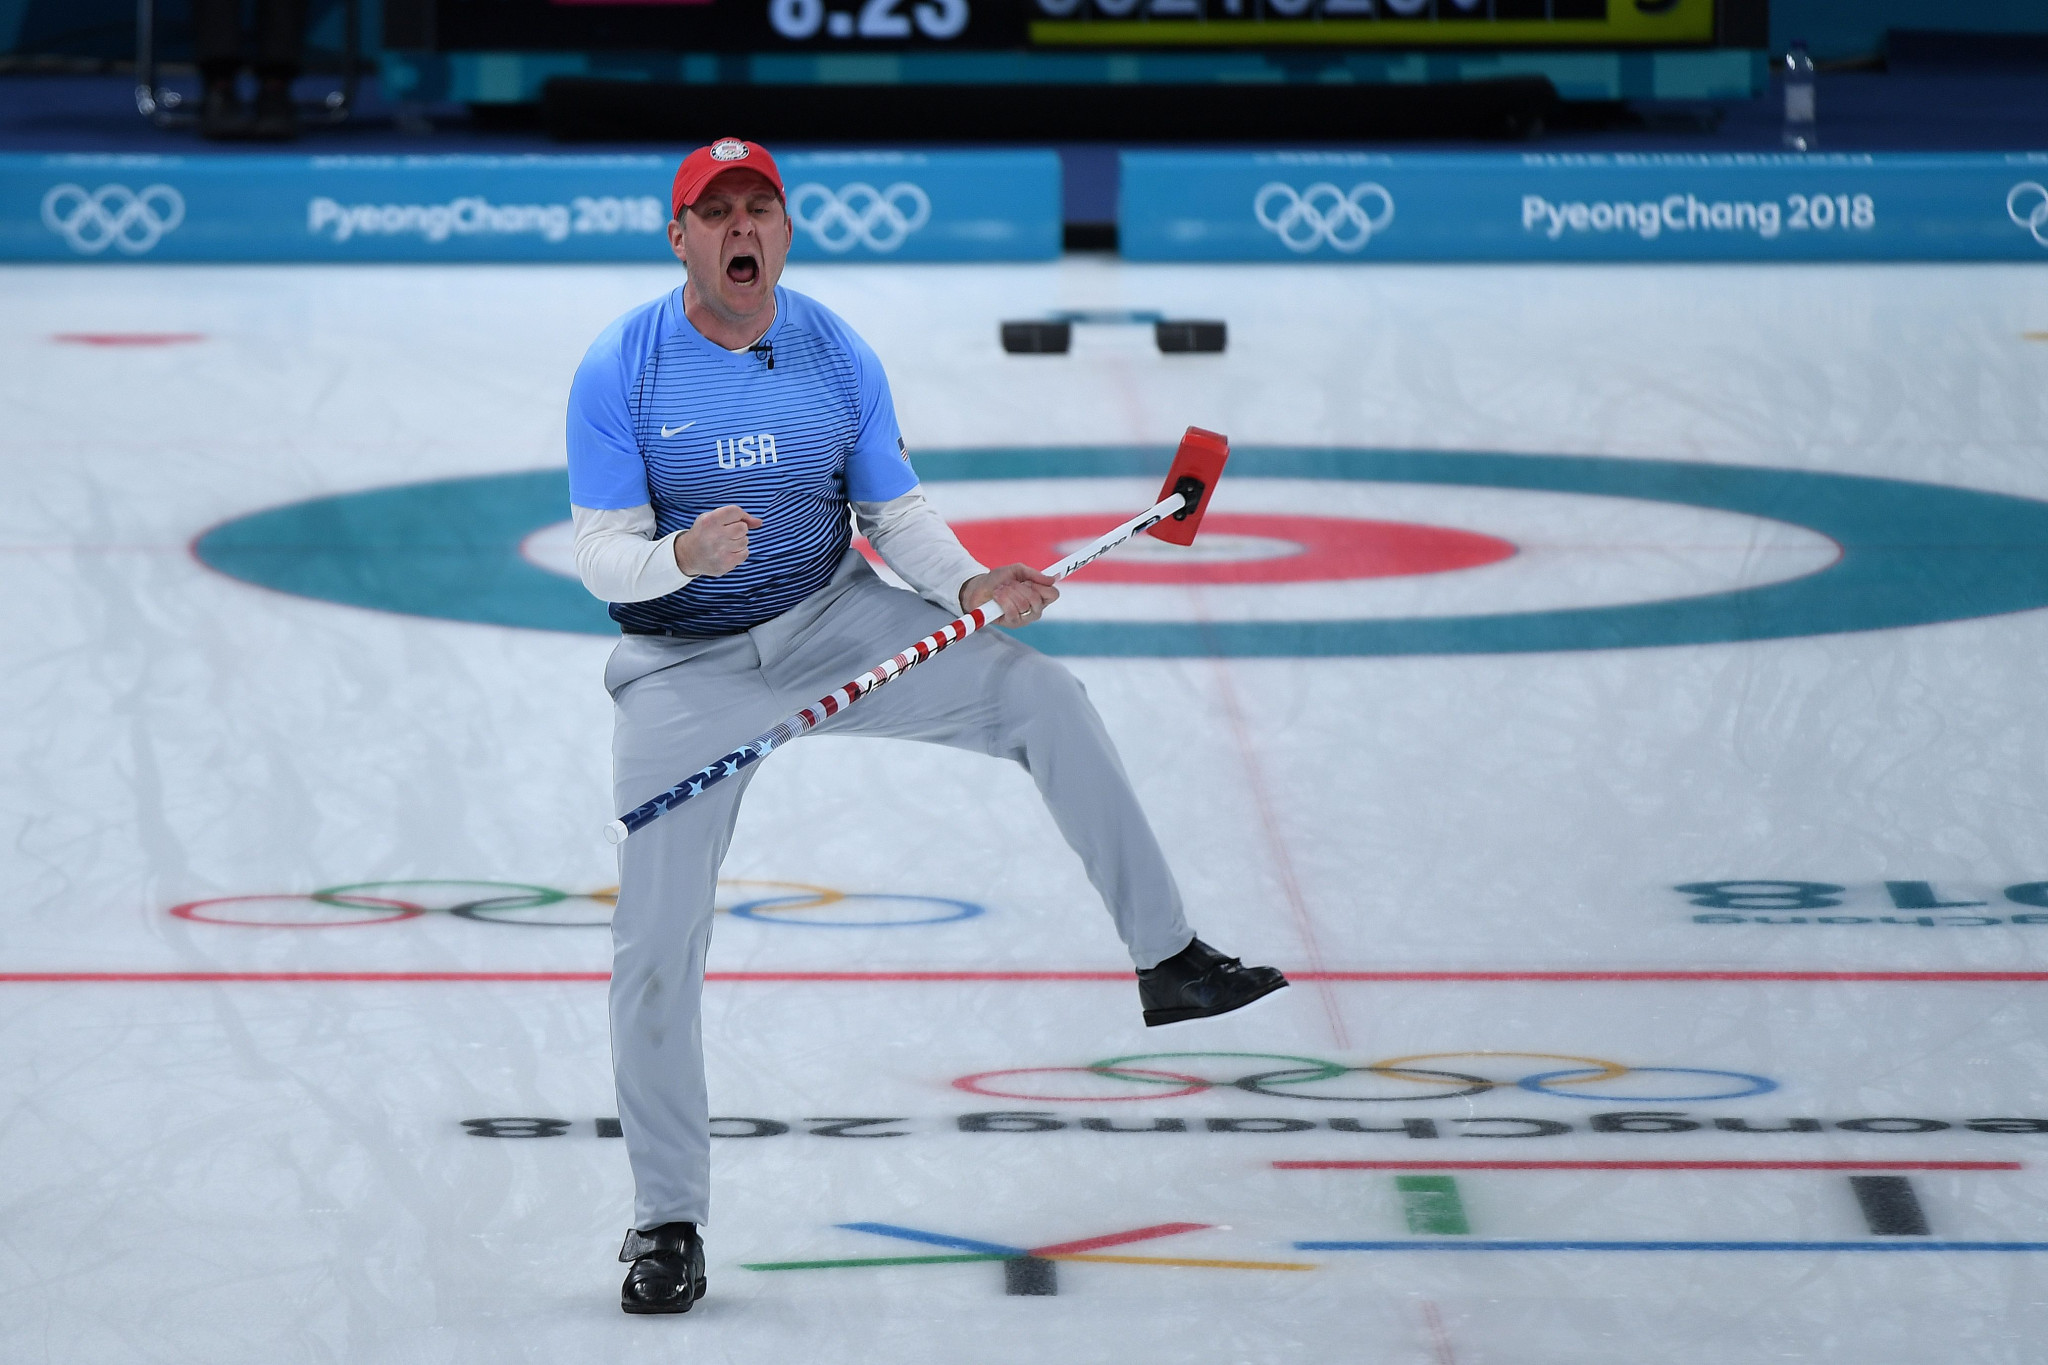 United States curling Olympic champions return to Omaha to throw first pitch at baseball match